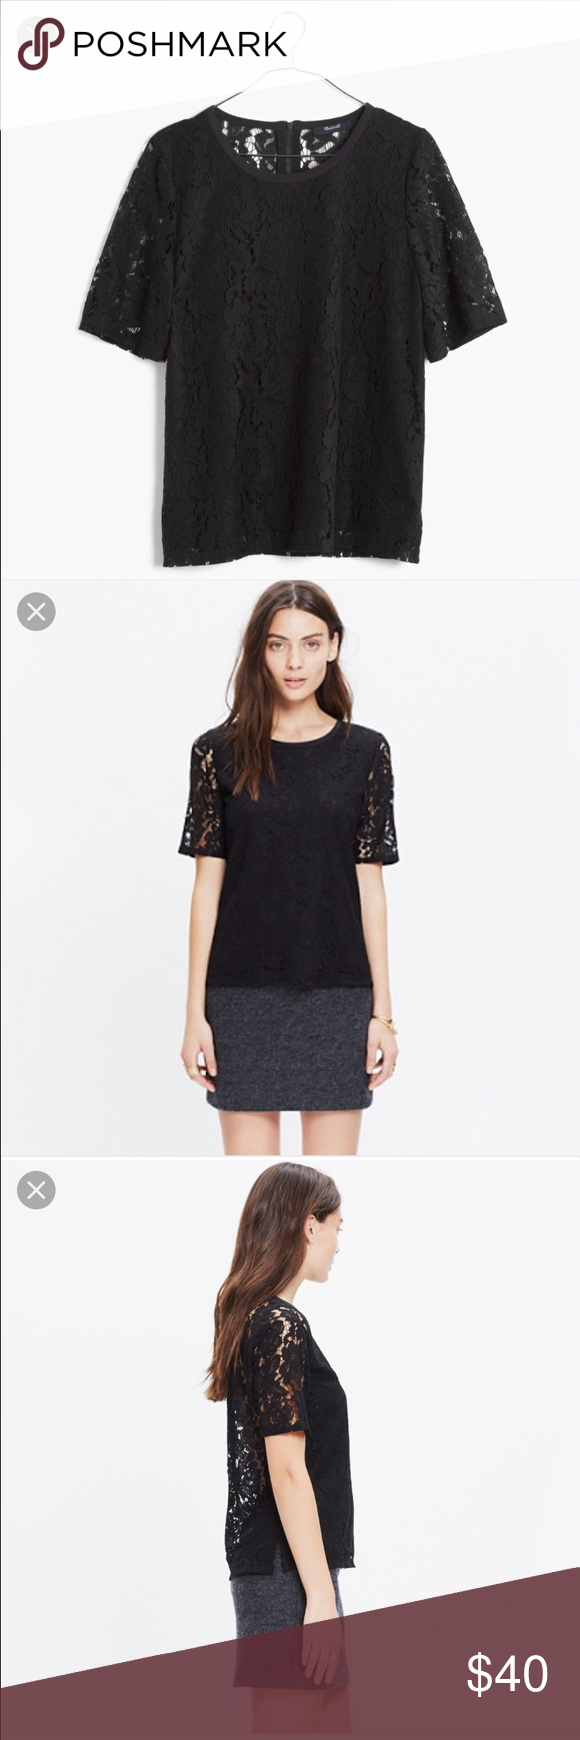 MADEWELL Black Lace Refined Tee Large L Worn once, excellent condition. As pictured, size large! Love to combine shipping and added discounts! Madewell Tops Blouses